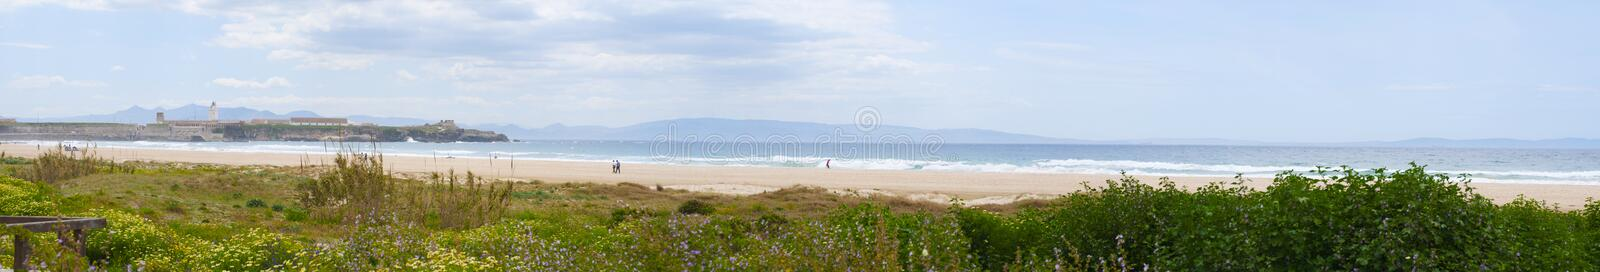 Tarifa, Spain, Andalusia, Iberian Peninsula, Europe. Spain, 23/04/2016: the lighthouse of Punta de Tarifa Point Tarifa, the southernmost point of the Iberian stock photos